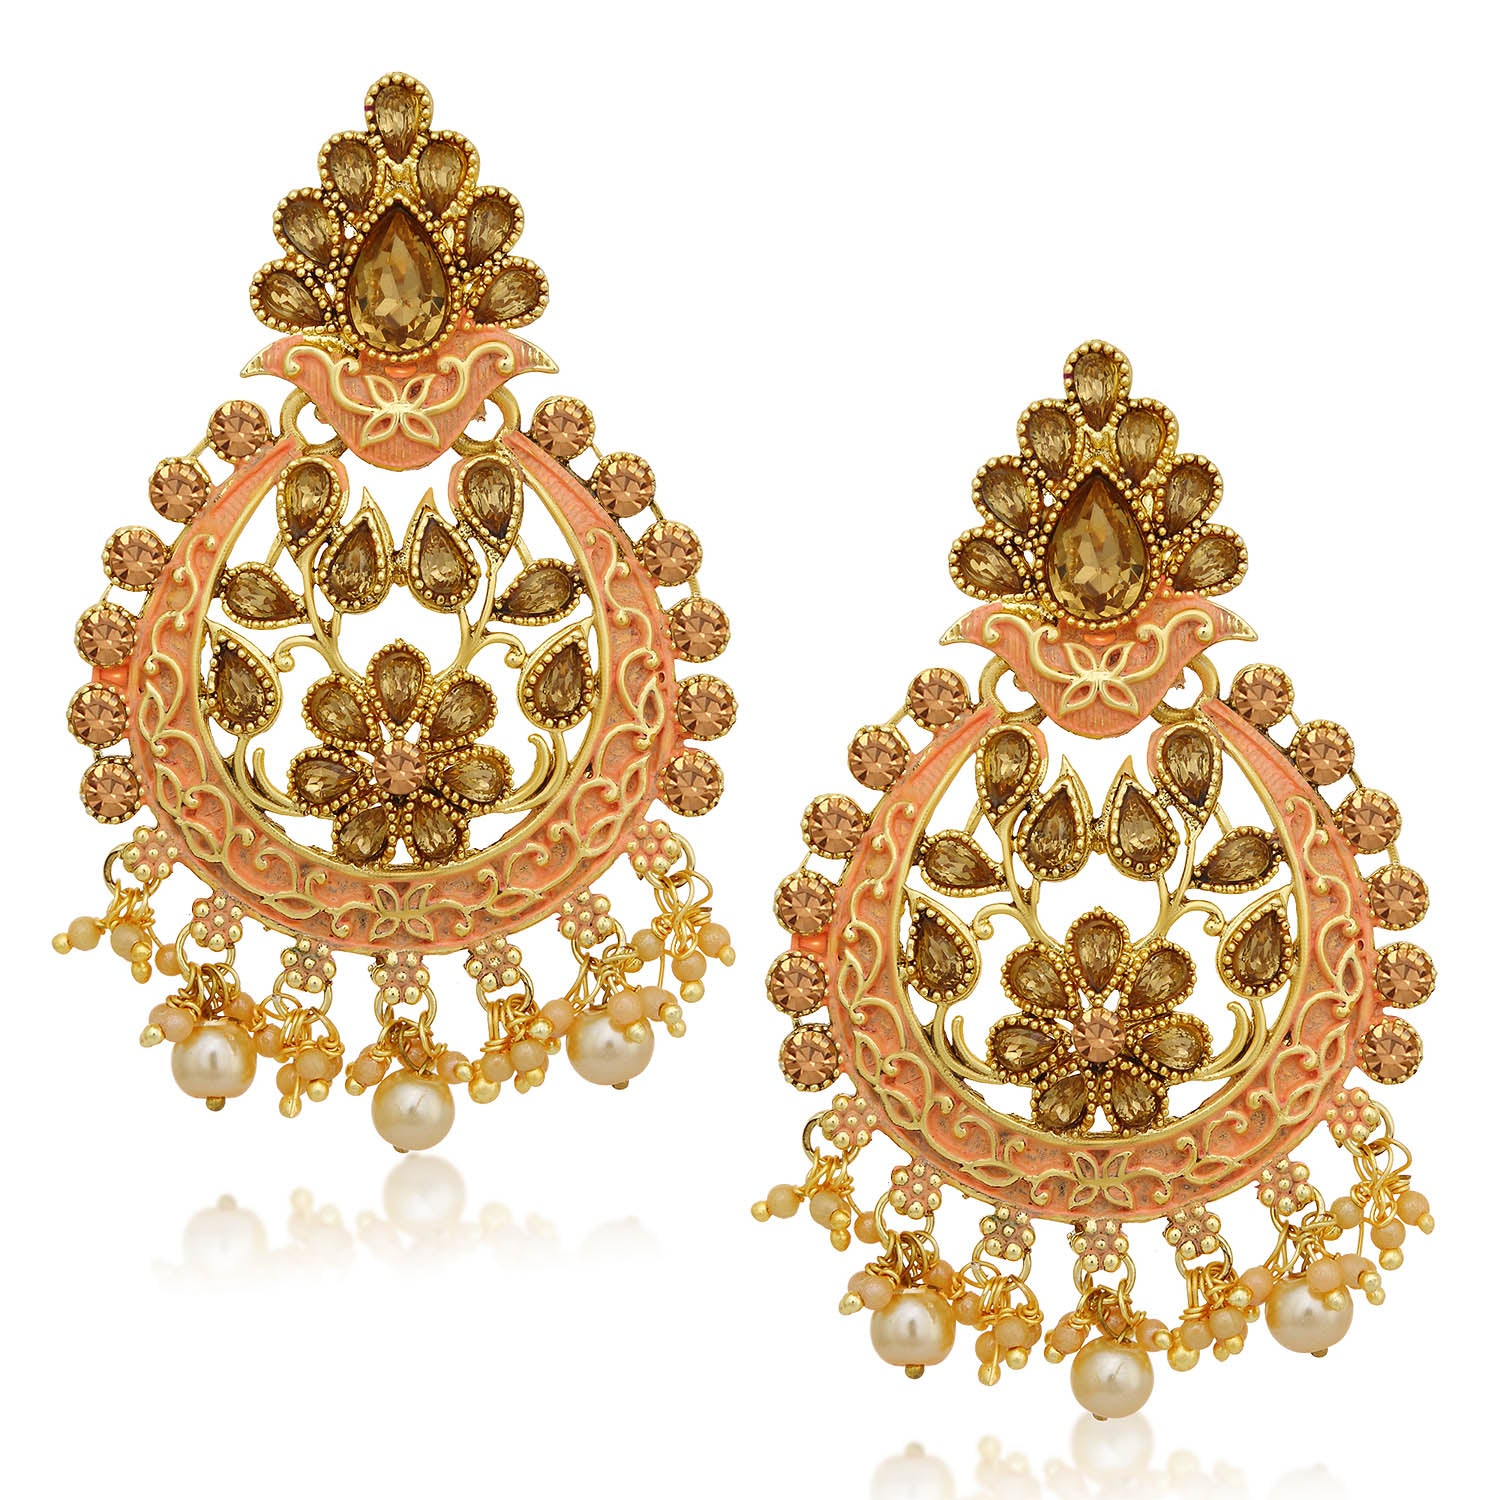 Sukkhi Glorious LCT Stone Gold Plated Floral Pink Mint Meena Collection Chandbali Earring For Women-SUKKHI1-Earring